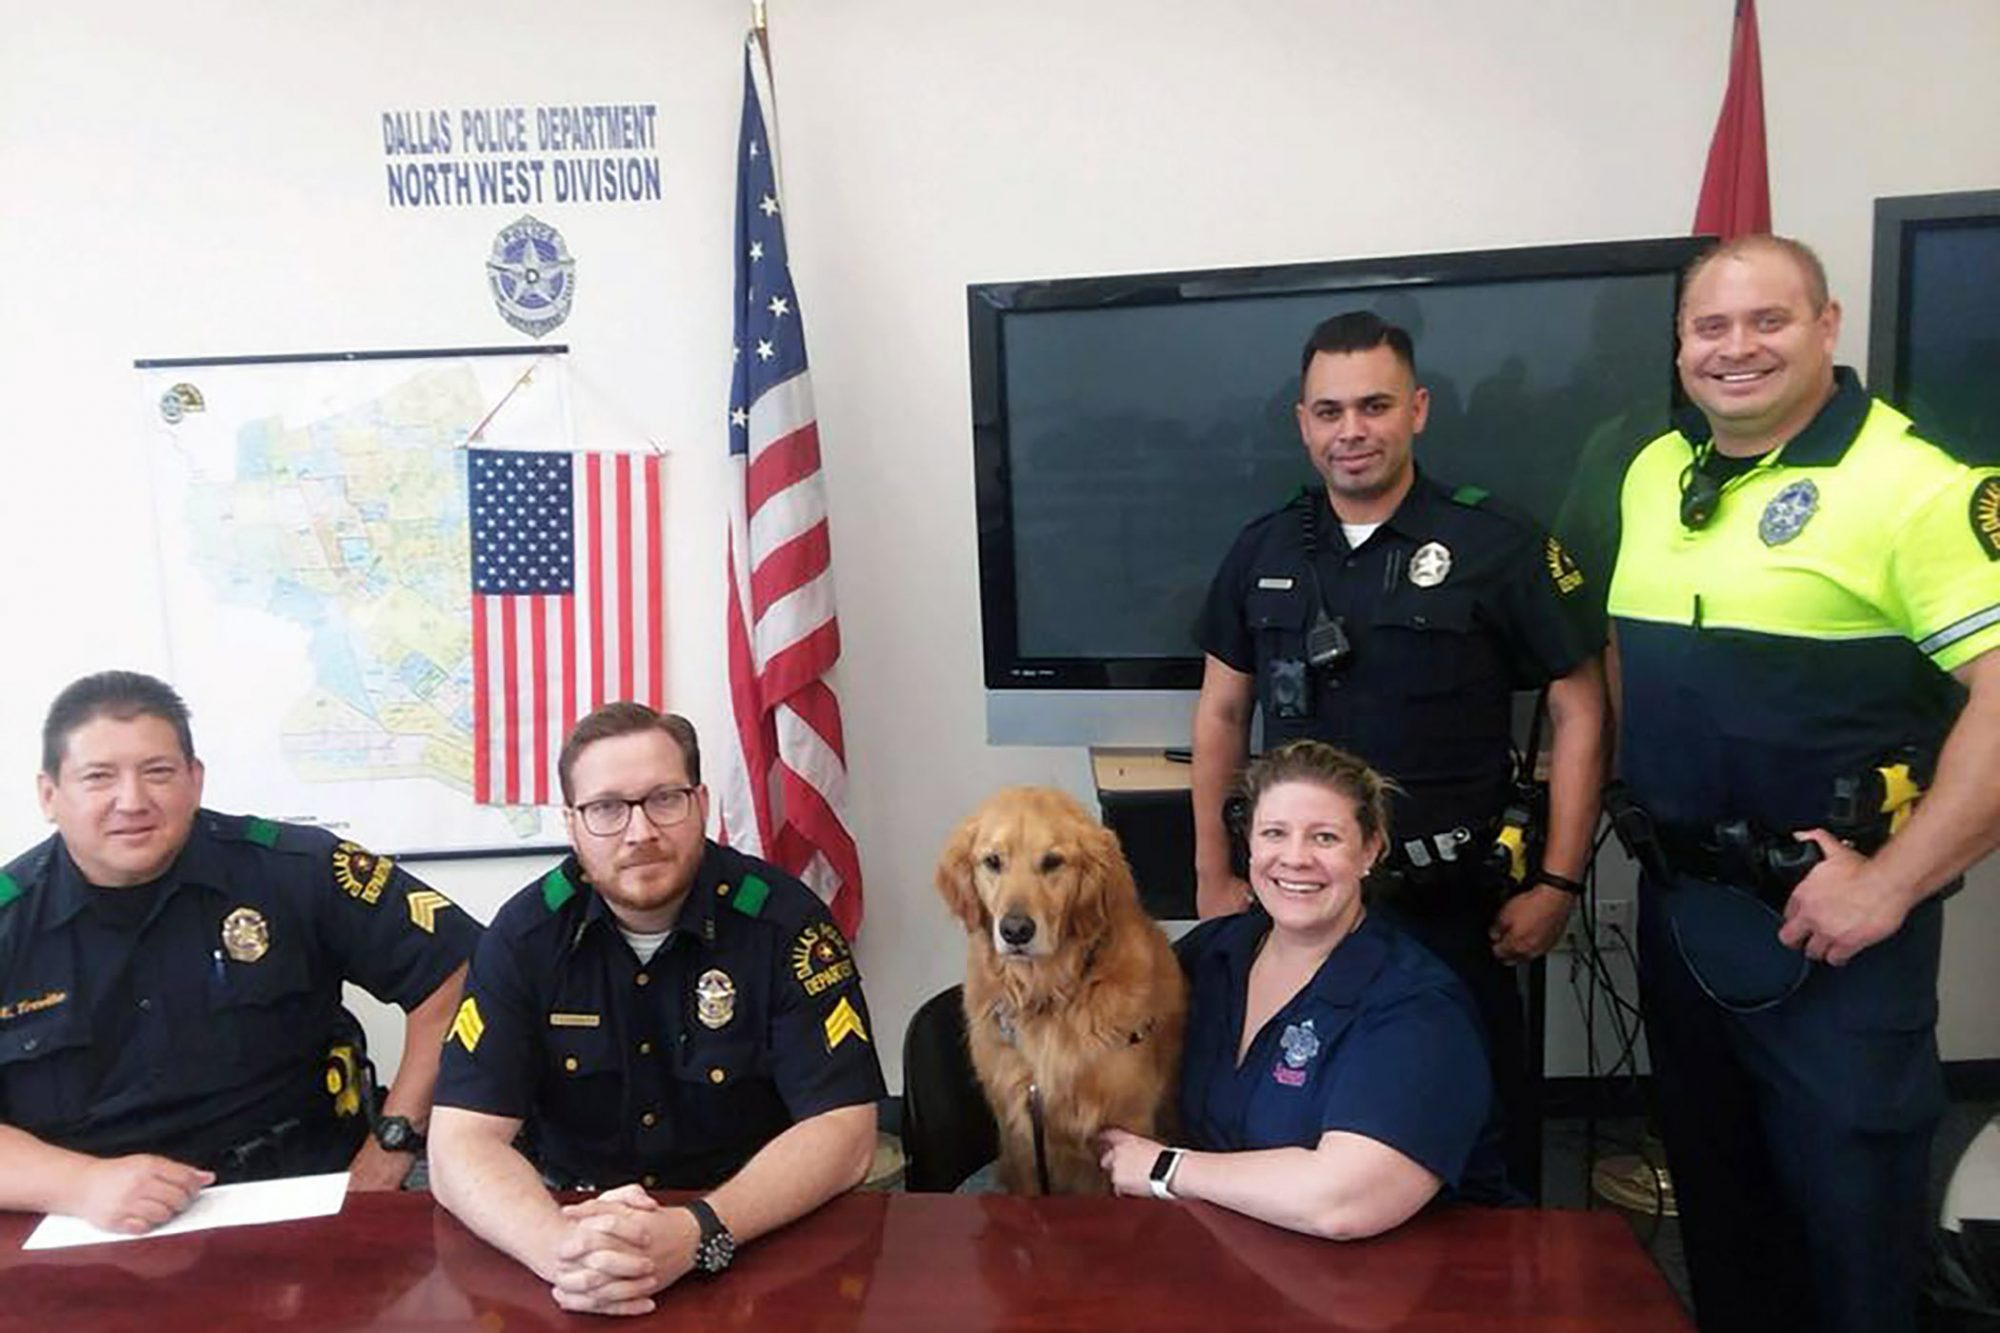 Therapy dog visits with police unit